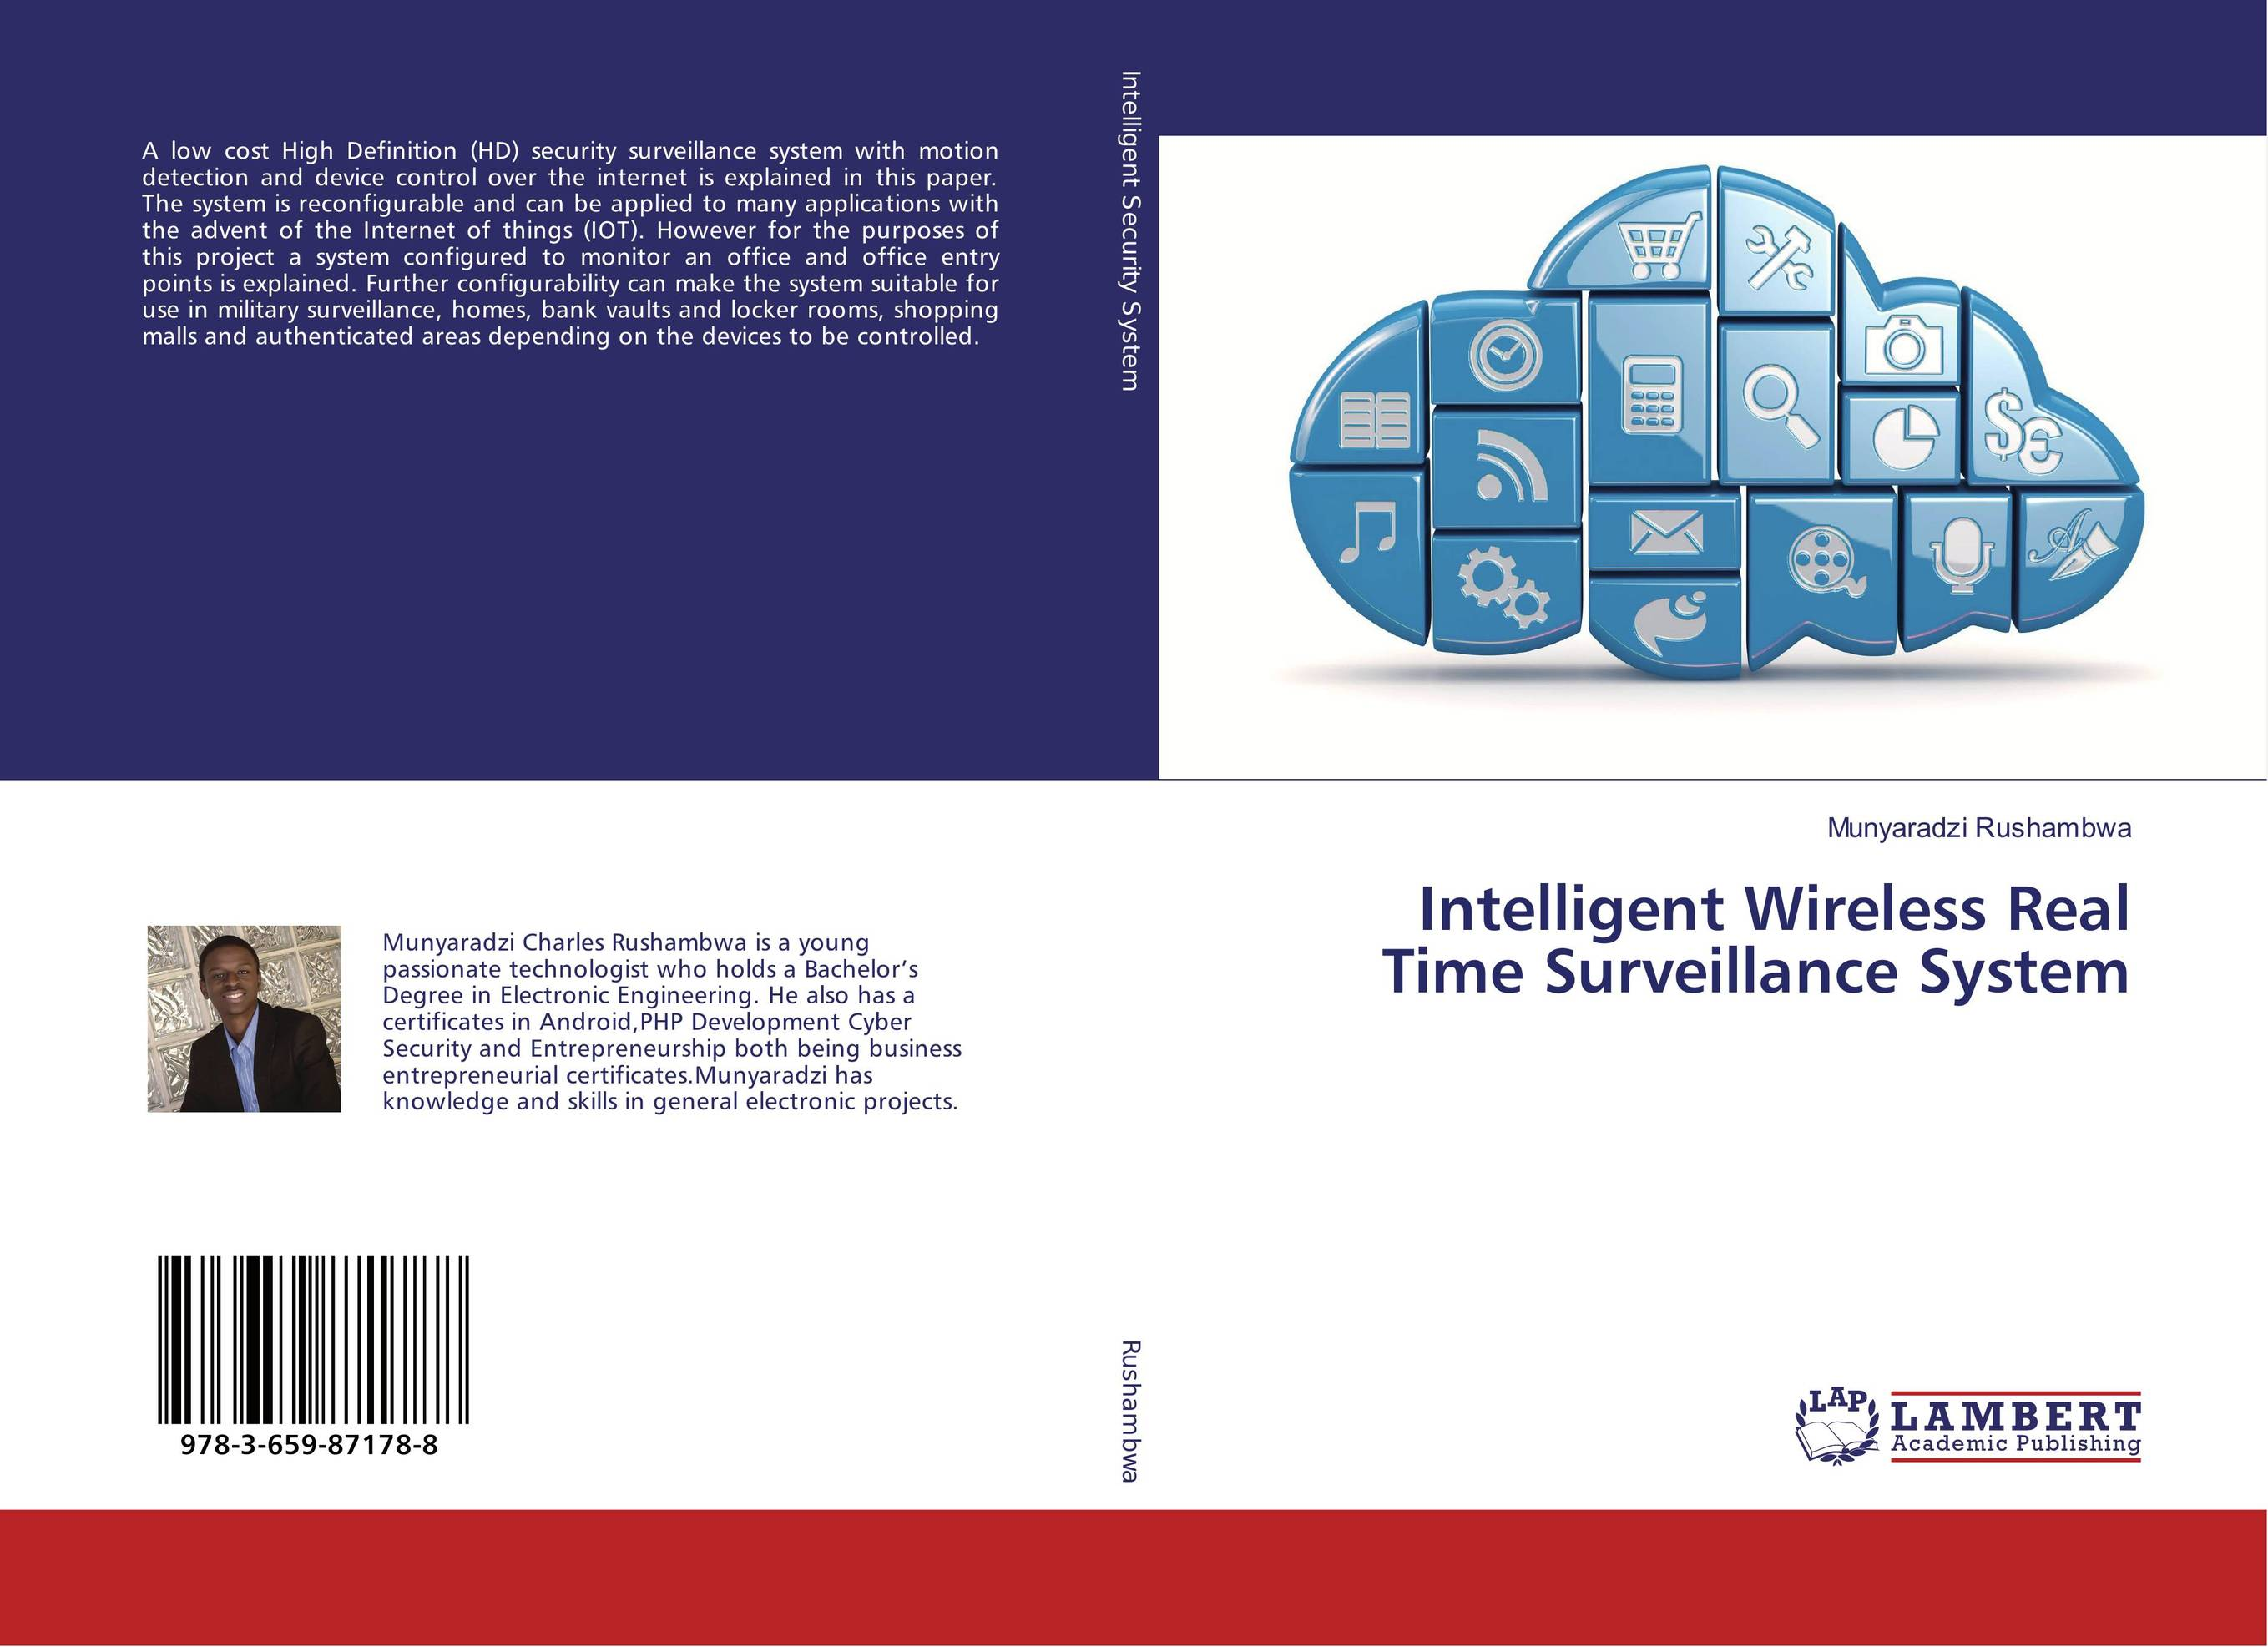 Intelligent Wireless Real Time Surveillance System lightweight and robust security for applications in internet of things